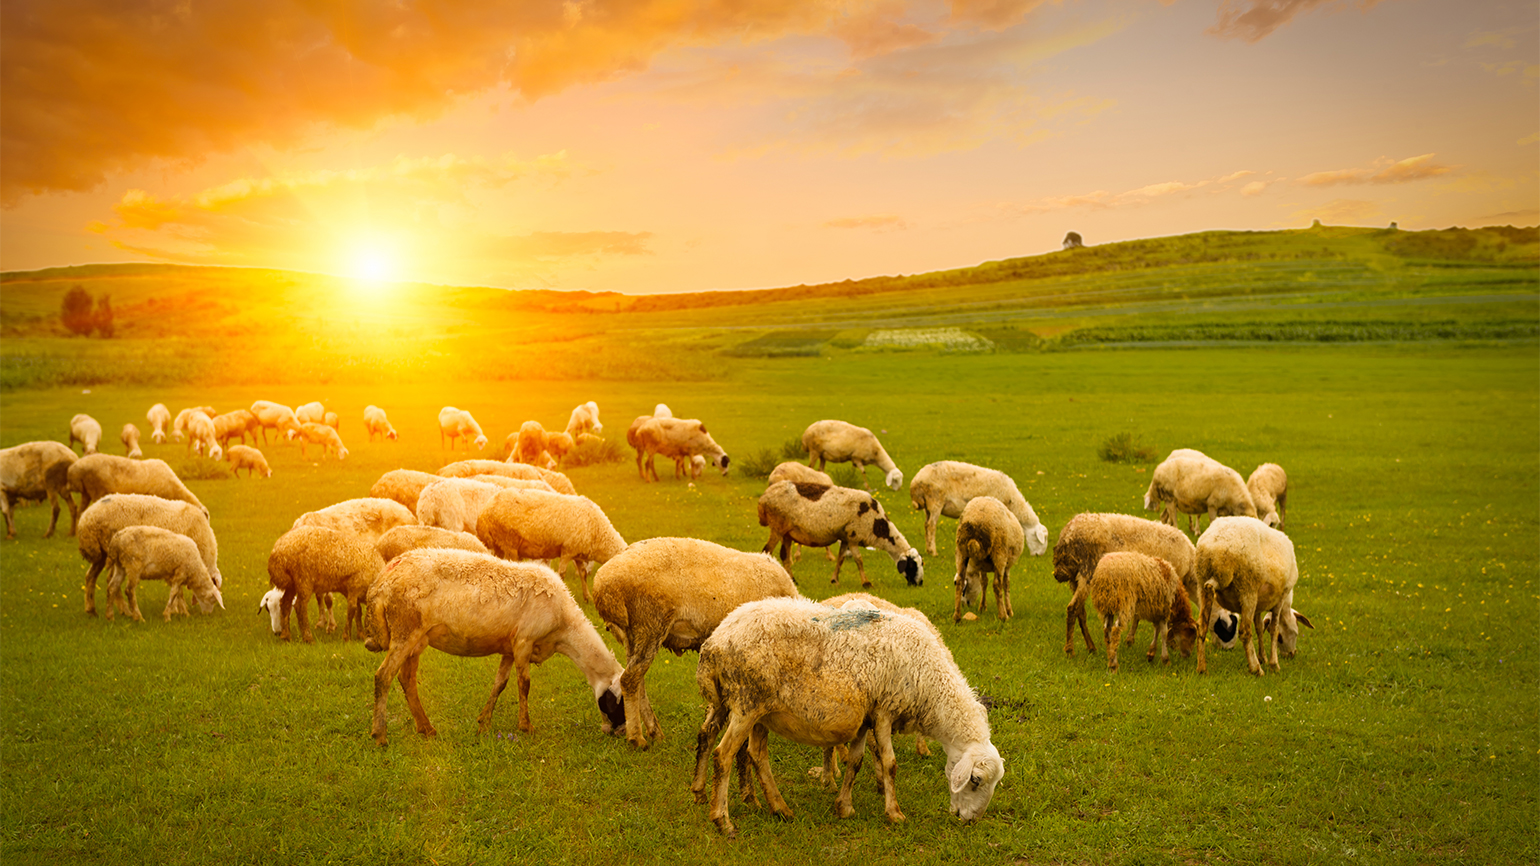 A herd of sheep in a sun-drenched field